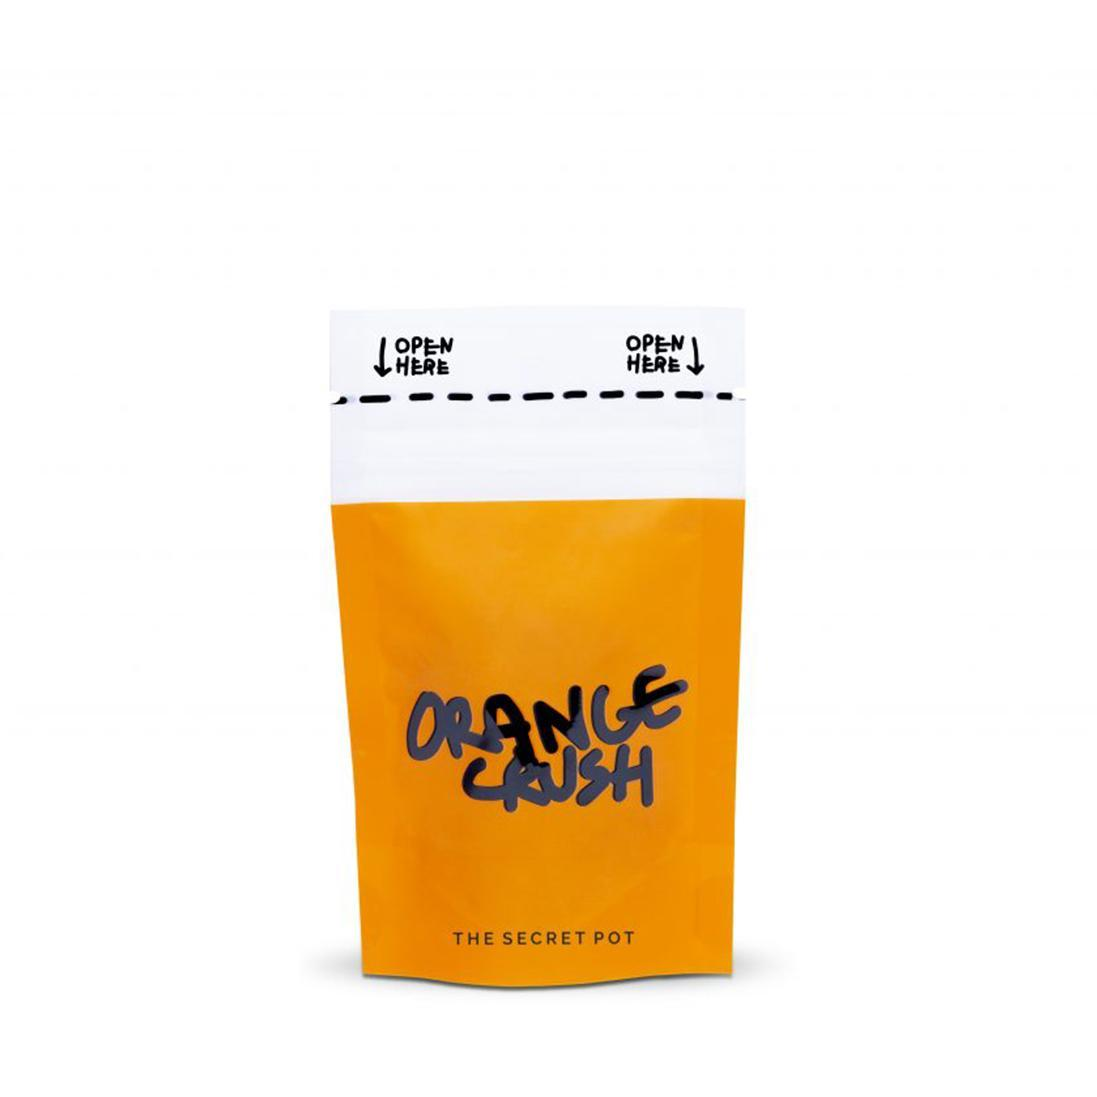 Orange Crush cannabis light